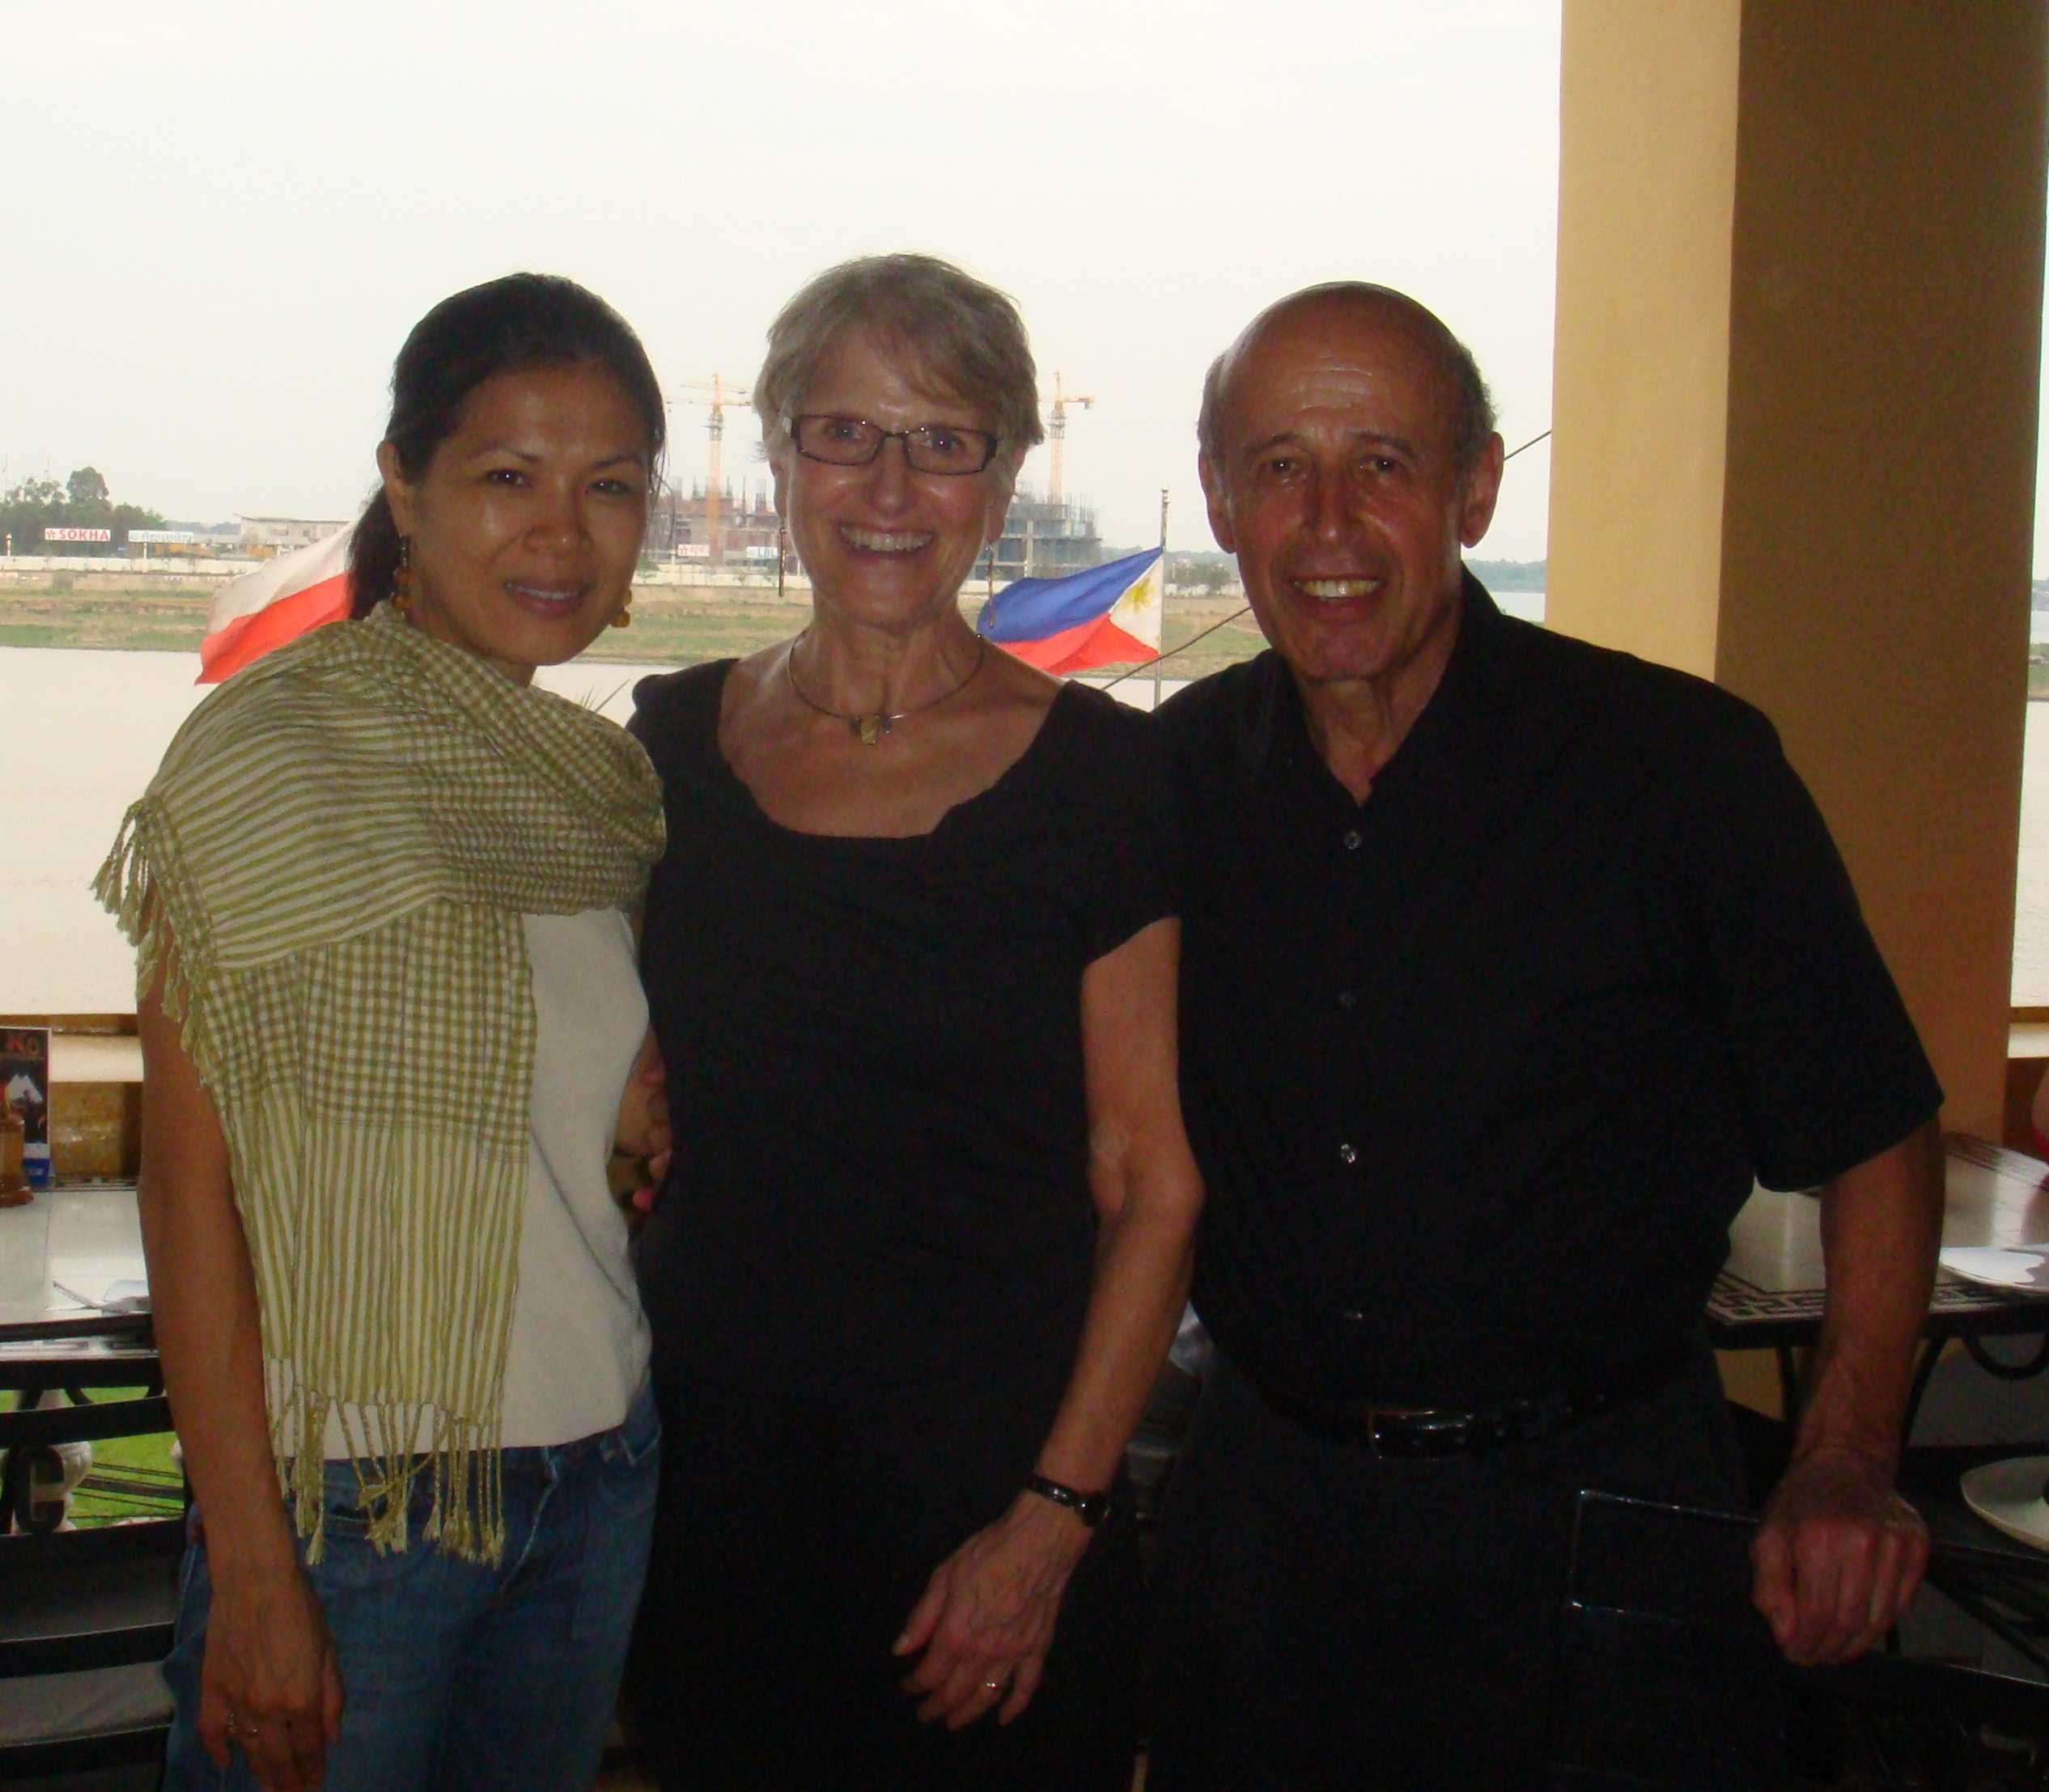 Ervin, Laurie Staub and Theary Seng, 6 March 2011